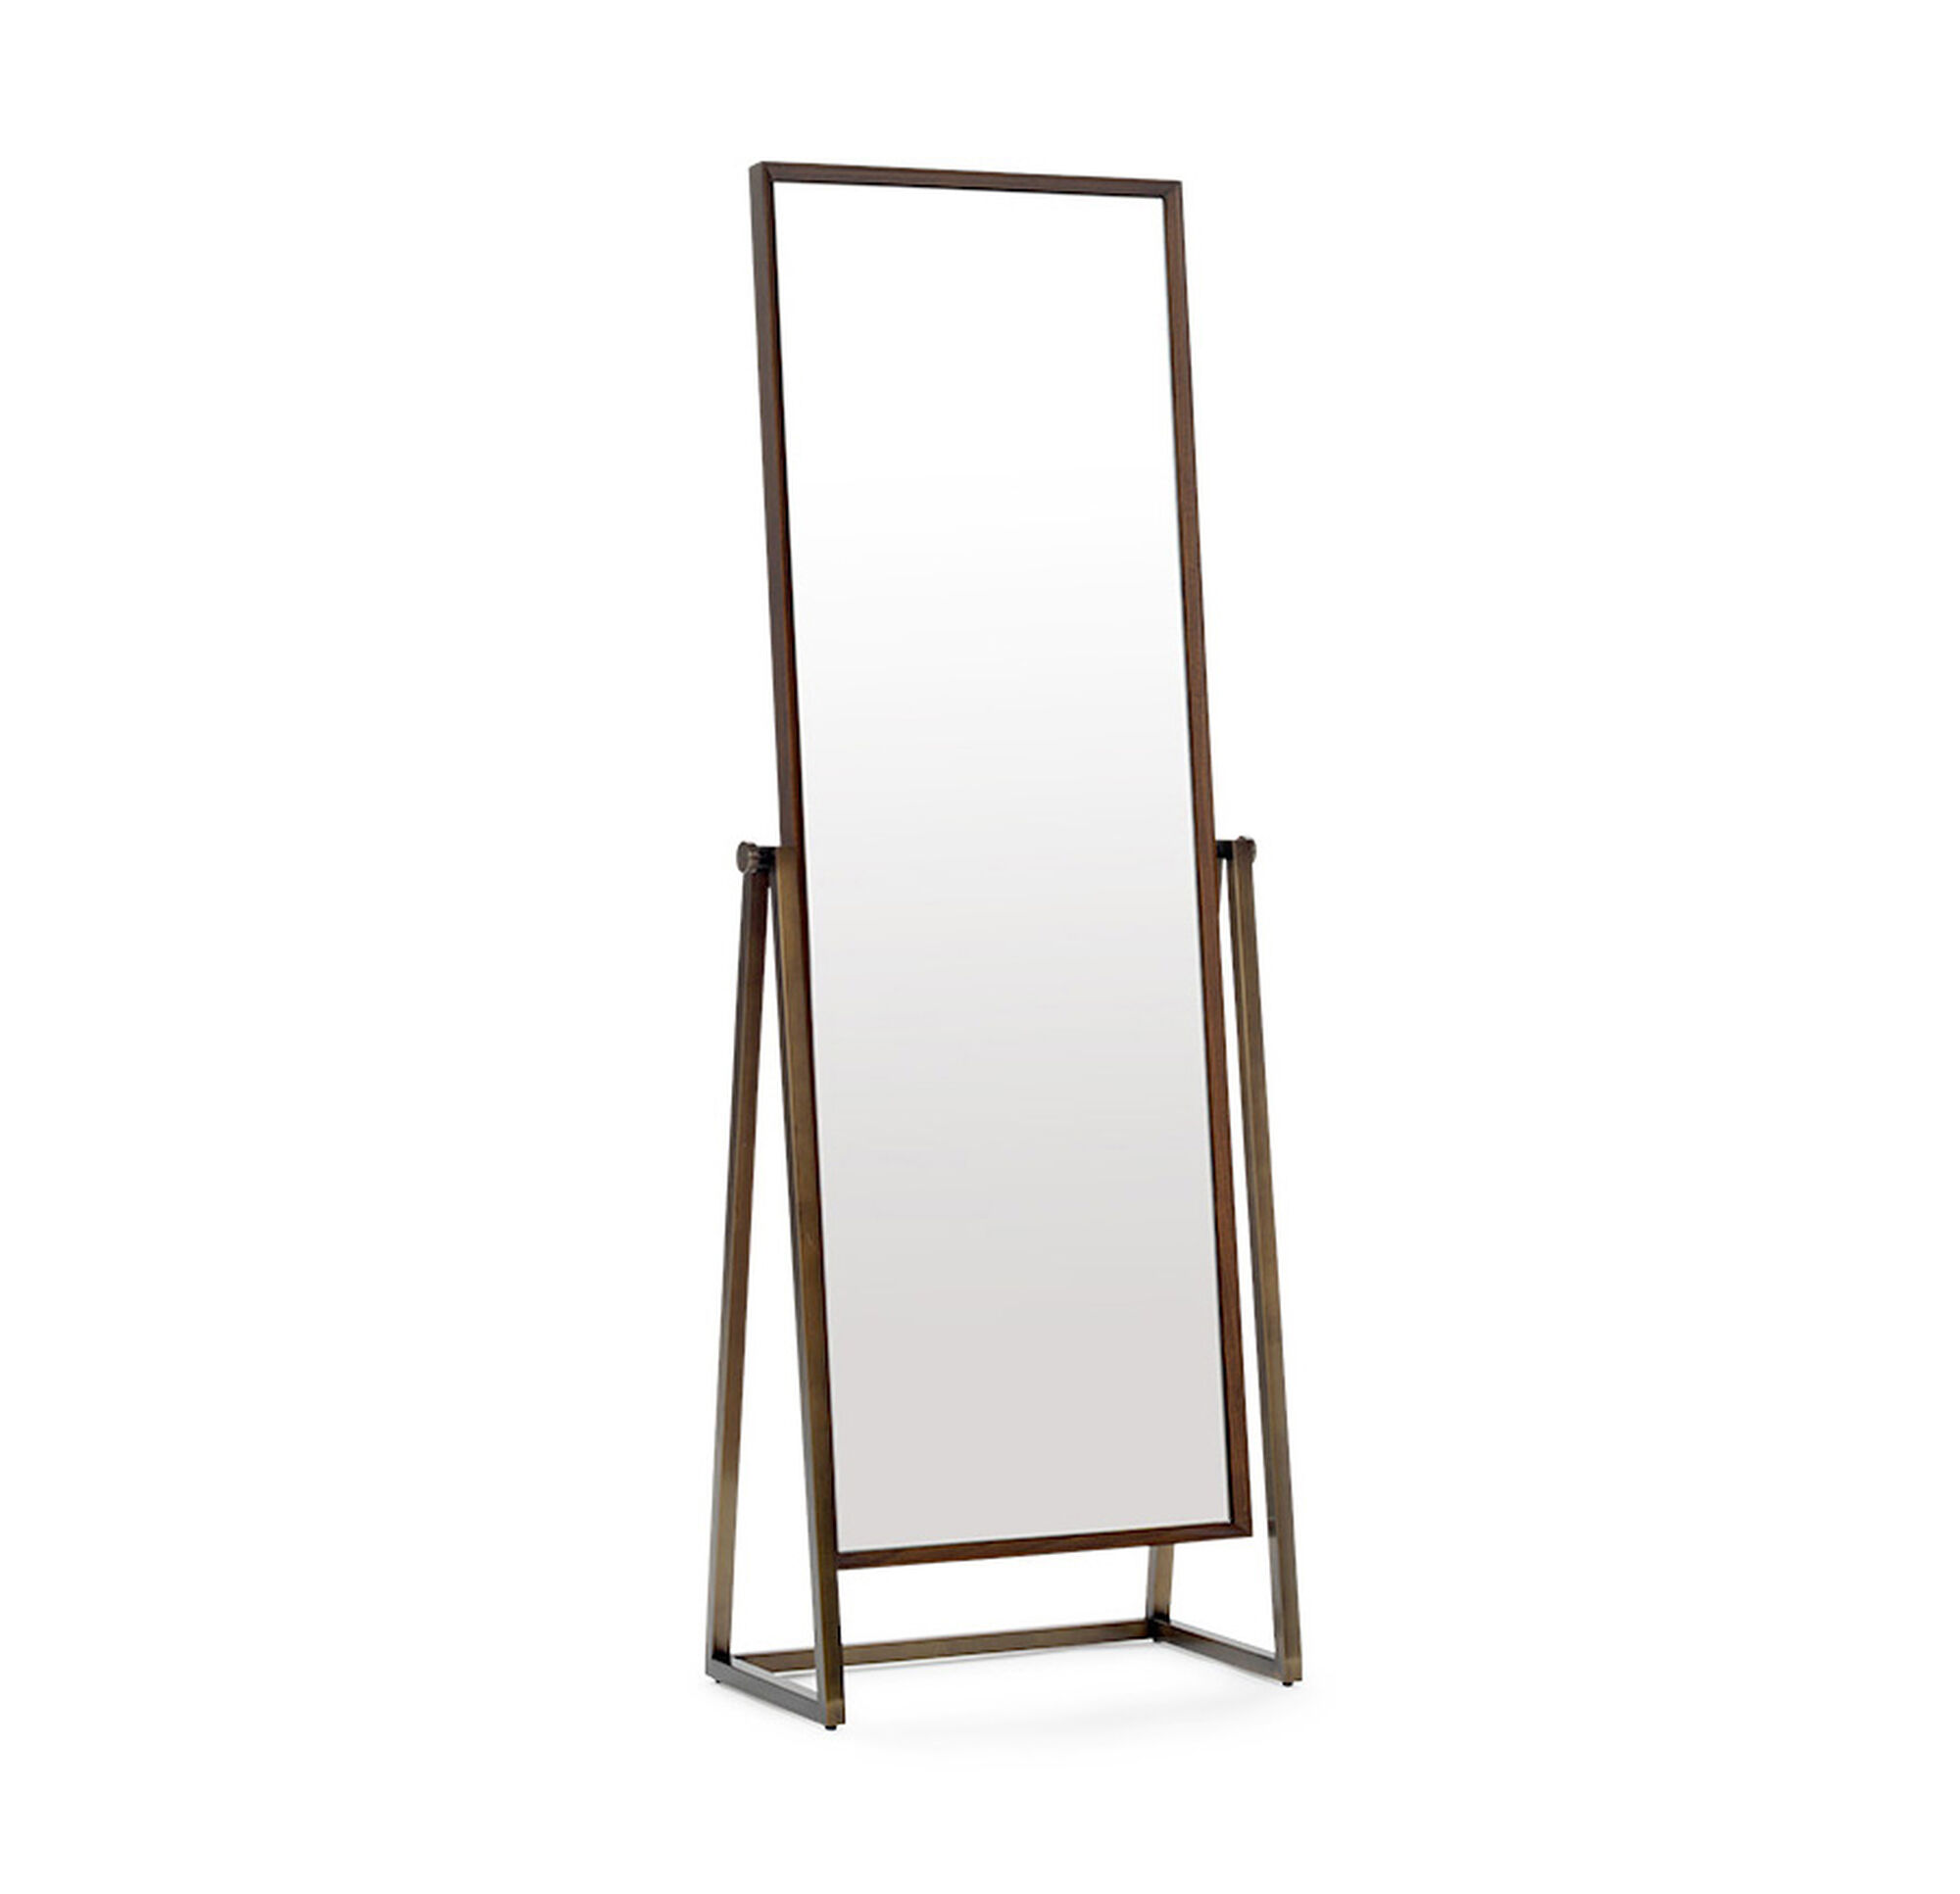 primrose dressing glass standing leaner floors mirror gold geometric all shop a with large mirrors edging plum frame mosaic floor